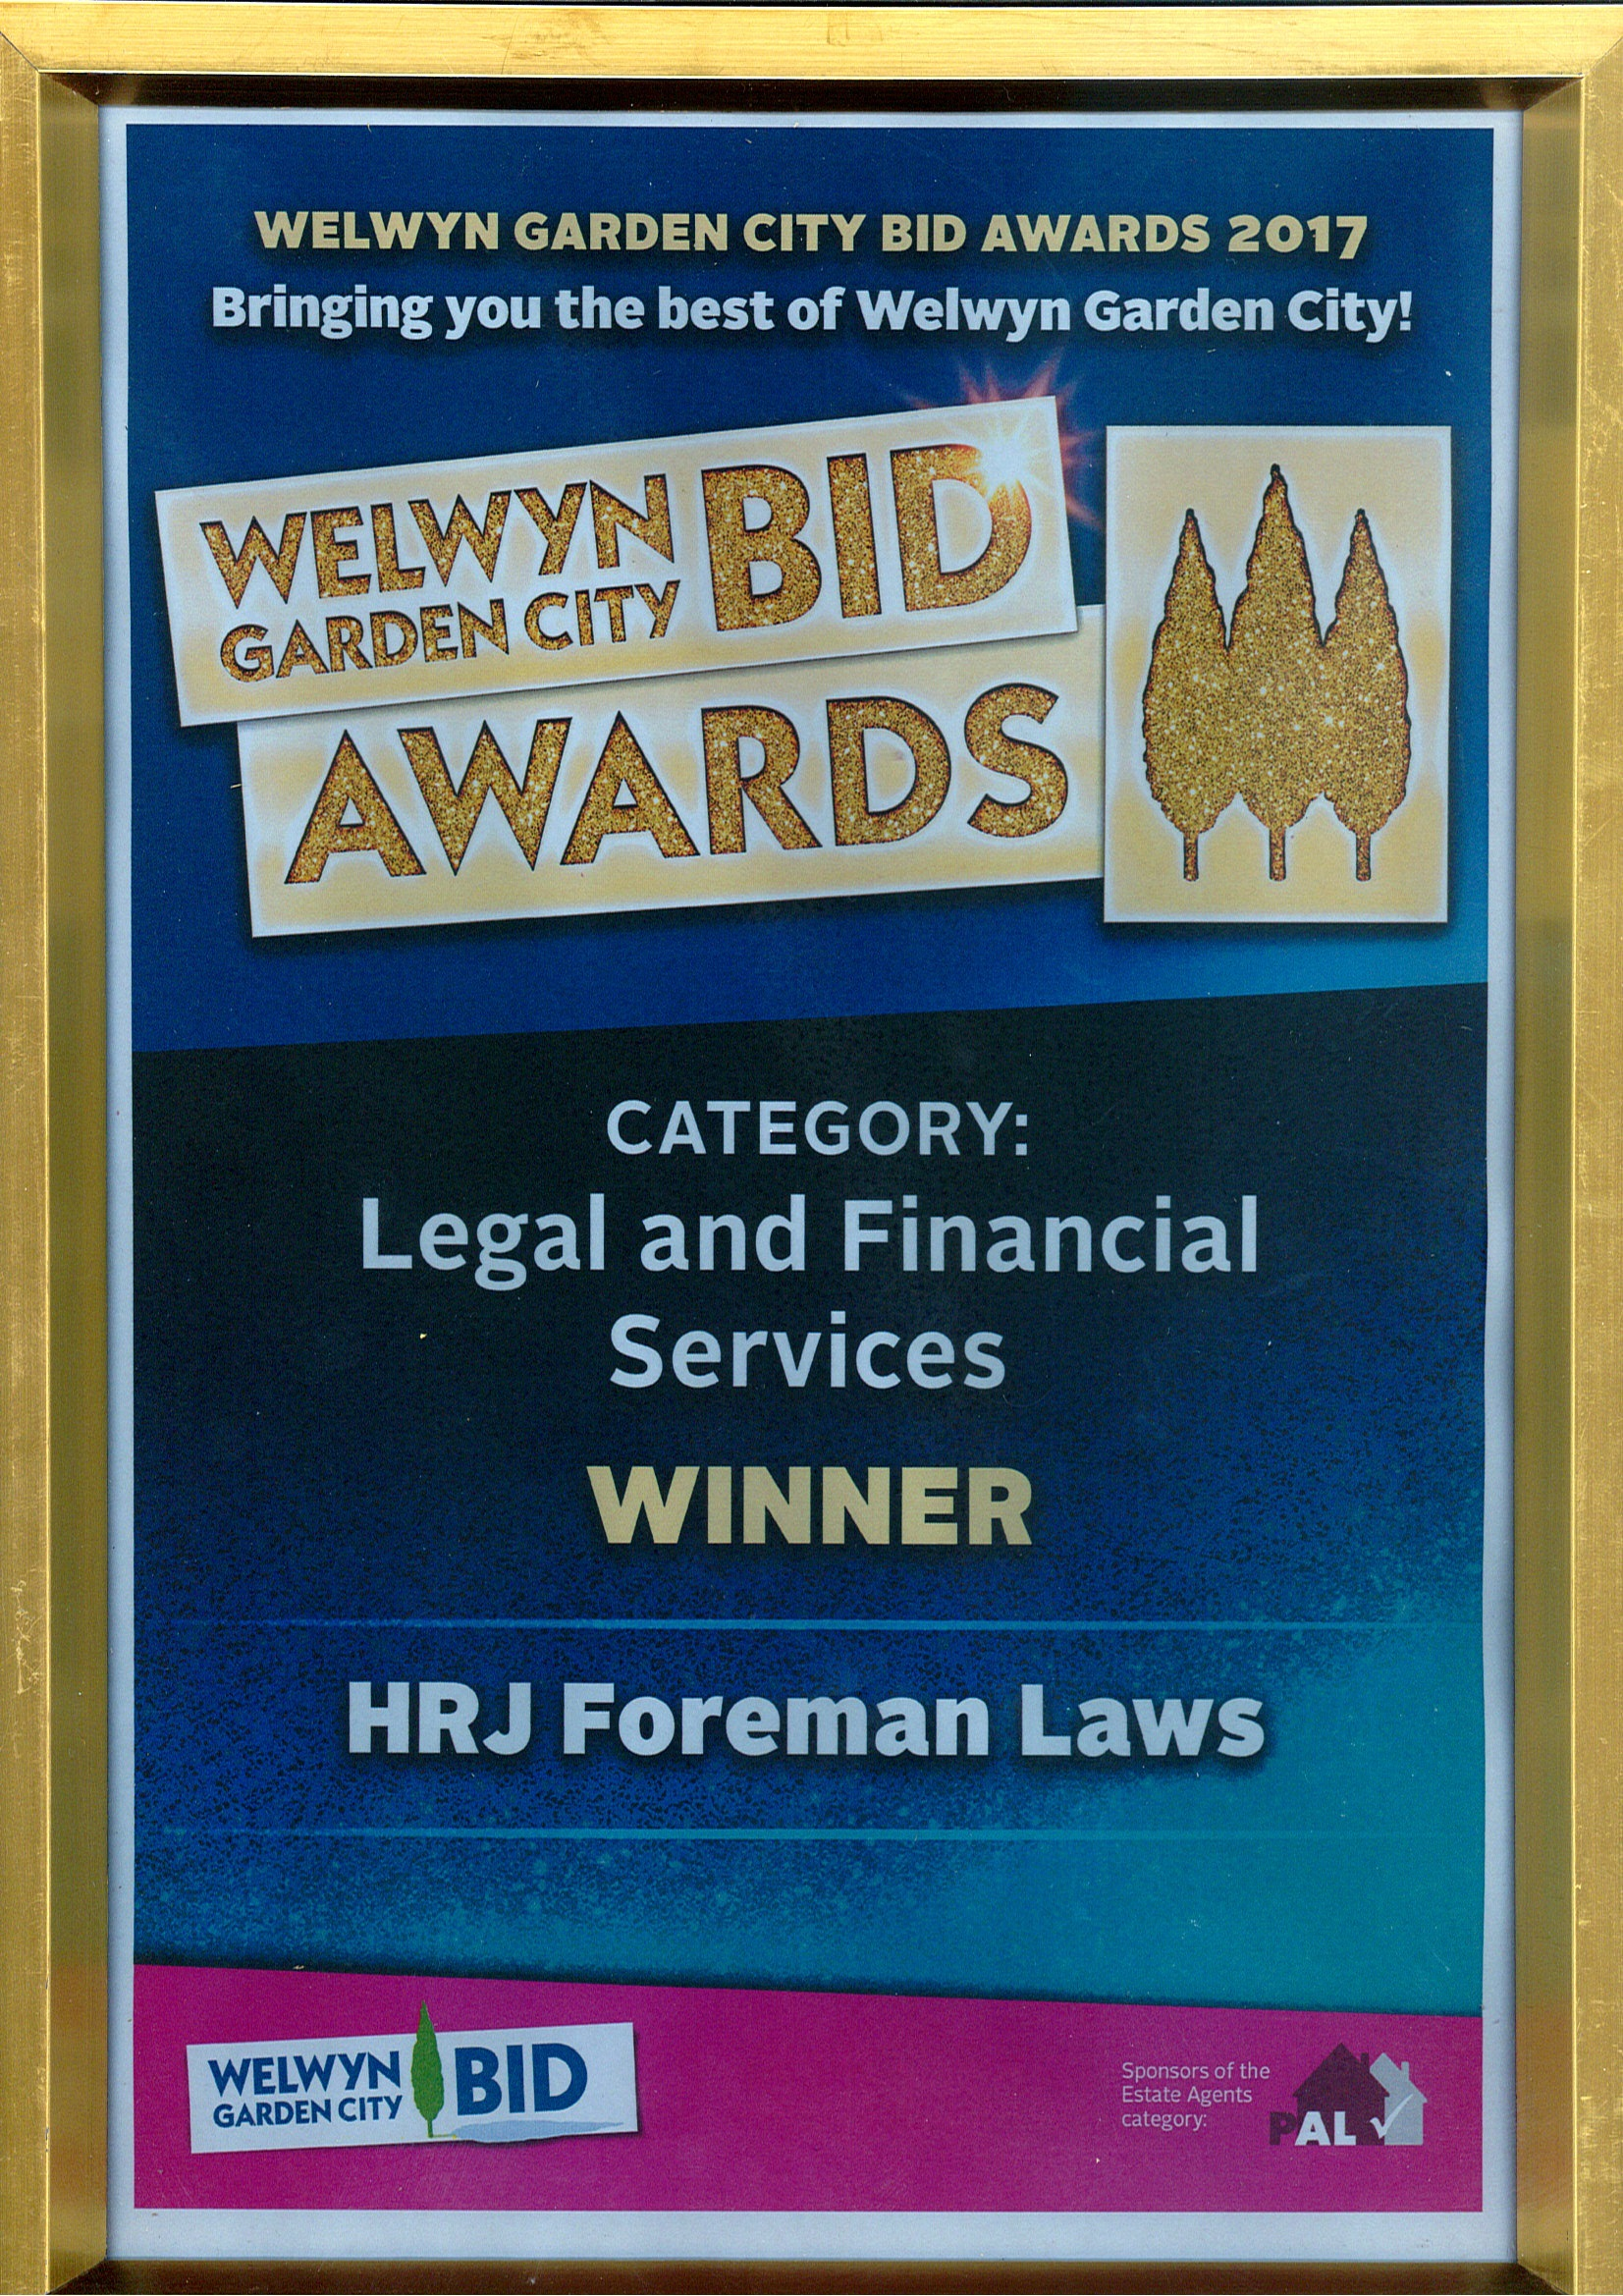 voted the best legal services business in Welwyn Garden City